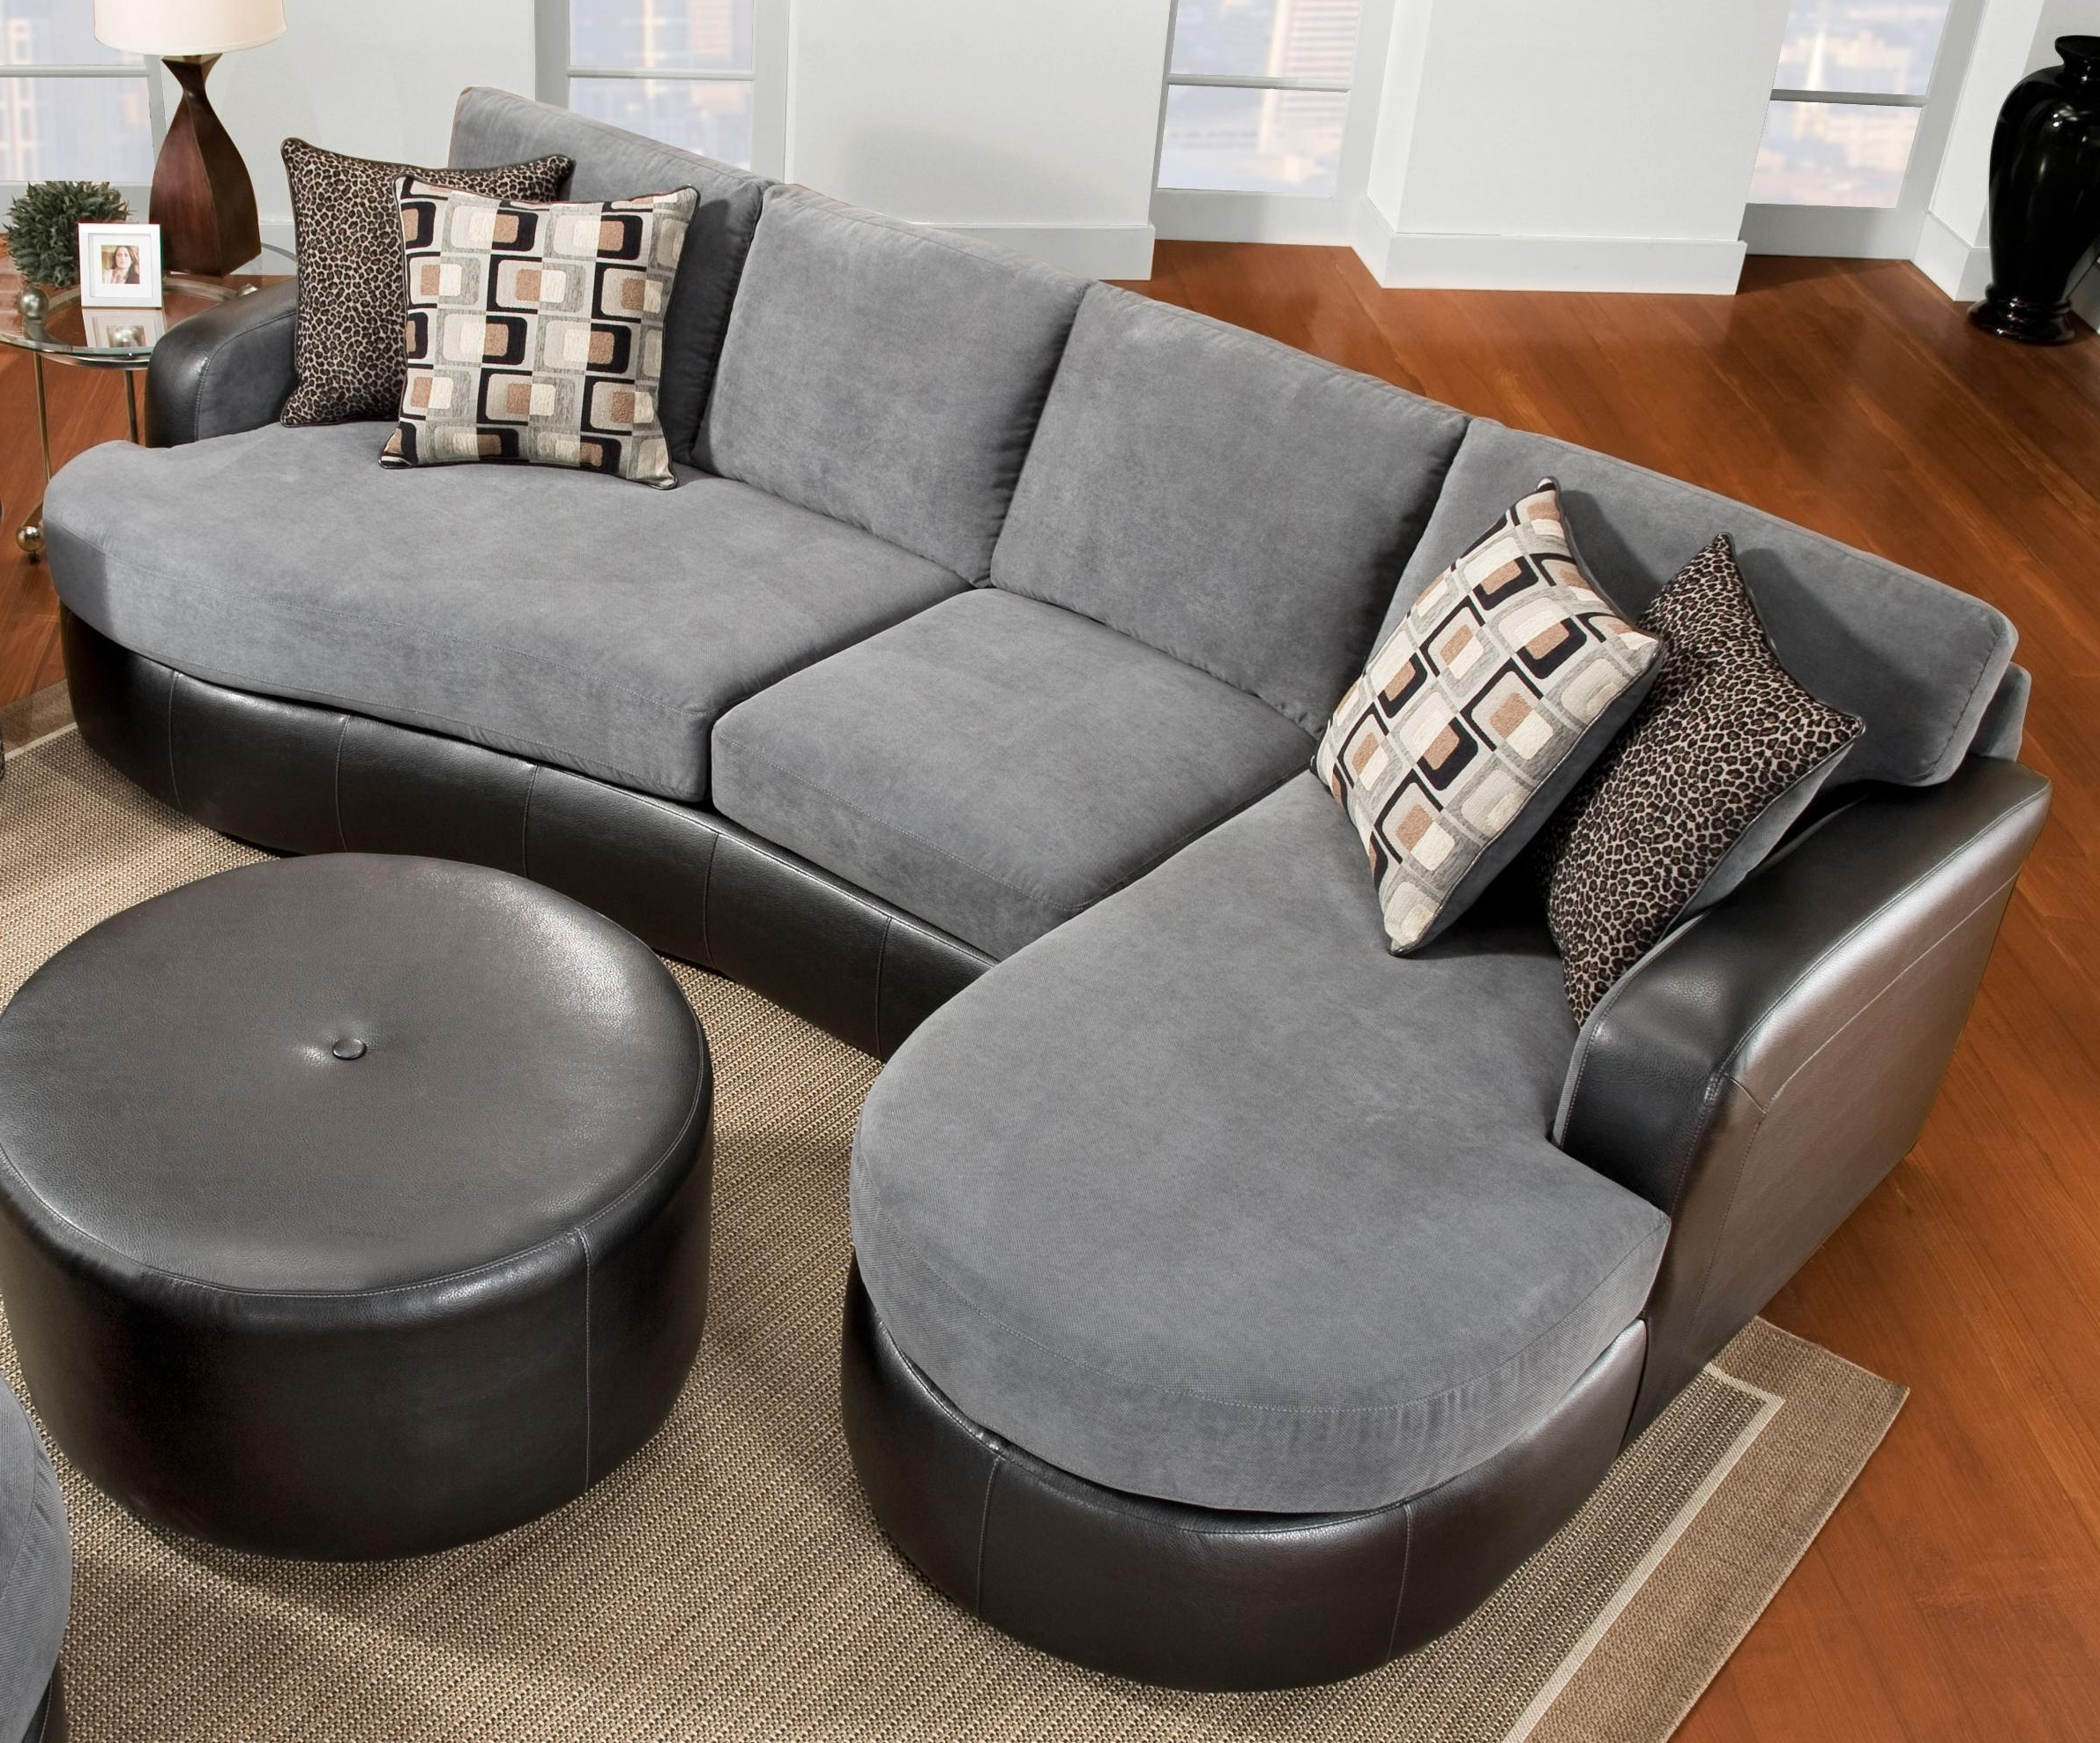 Latest Leather Sectionals With Chaise And Ottoman With Home Design : Dazzling Best Modern Fabric Sectional Sofas With (View 11 of 20)